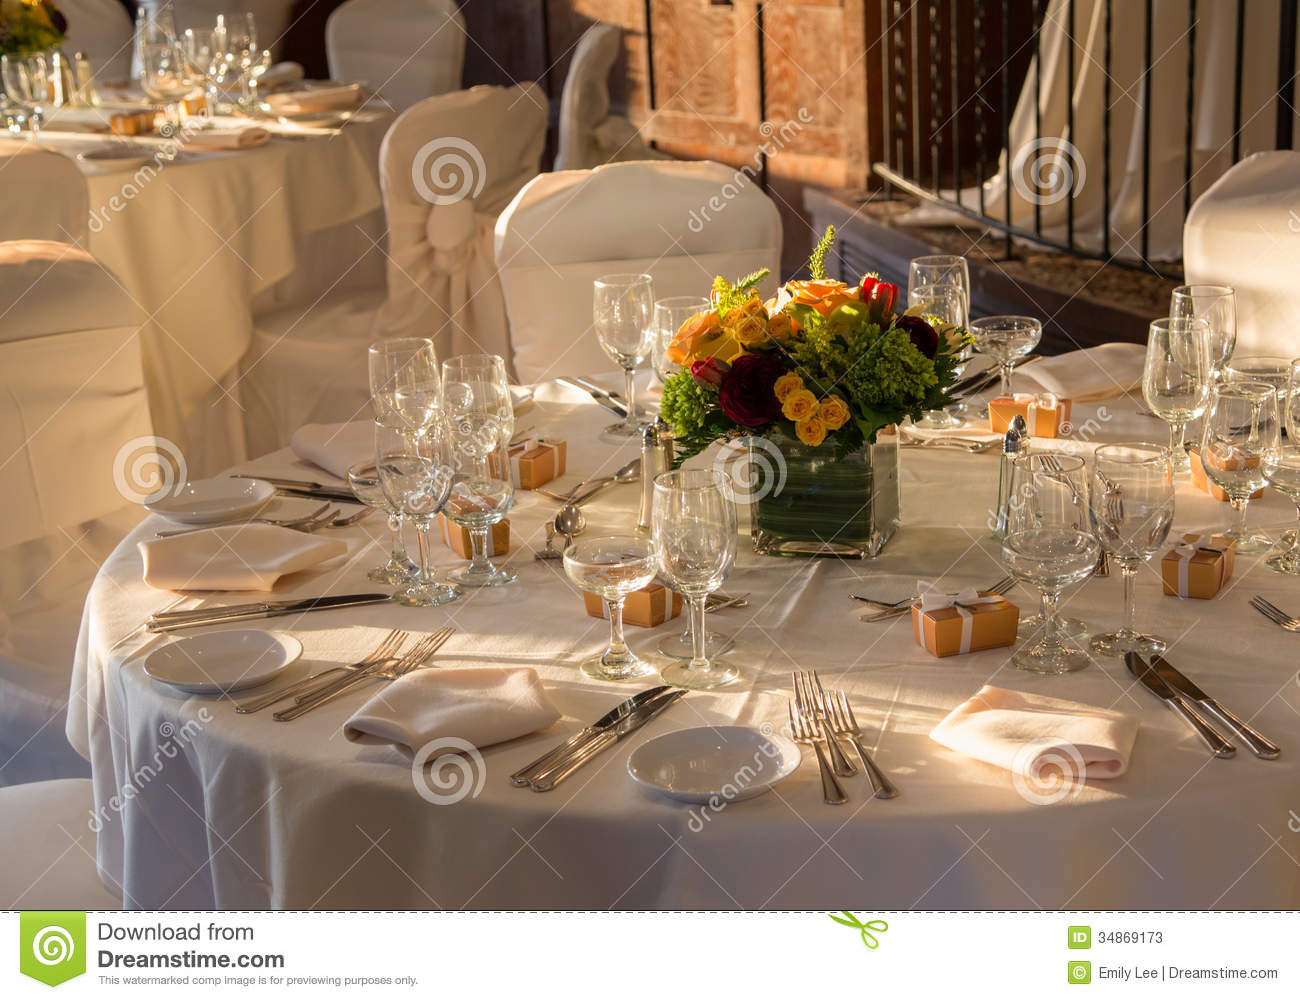 Reception Hall Ready stock image Image of chandelier  : reception hall ready dining room le chateau south salem ny all set up to host simple elegant wedding 34869173 from dreamstime.com size 1300 x 1000 jpeg 174kB